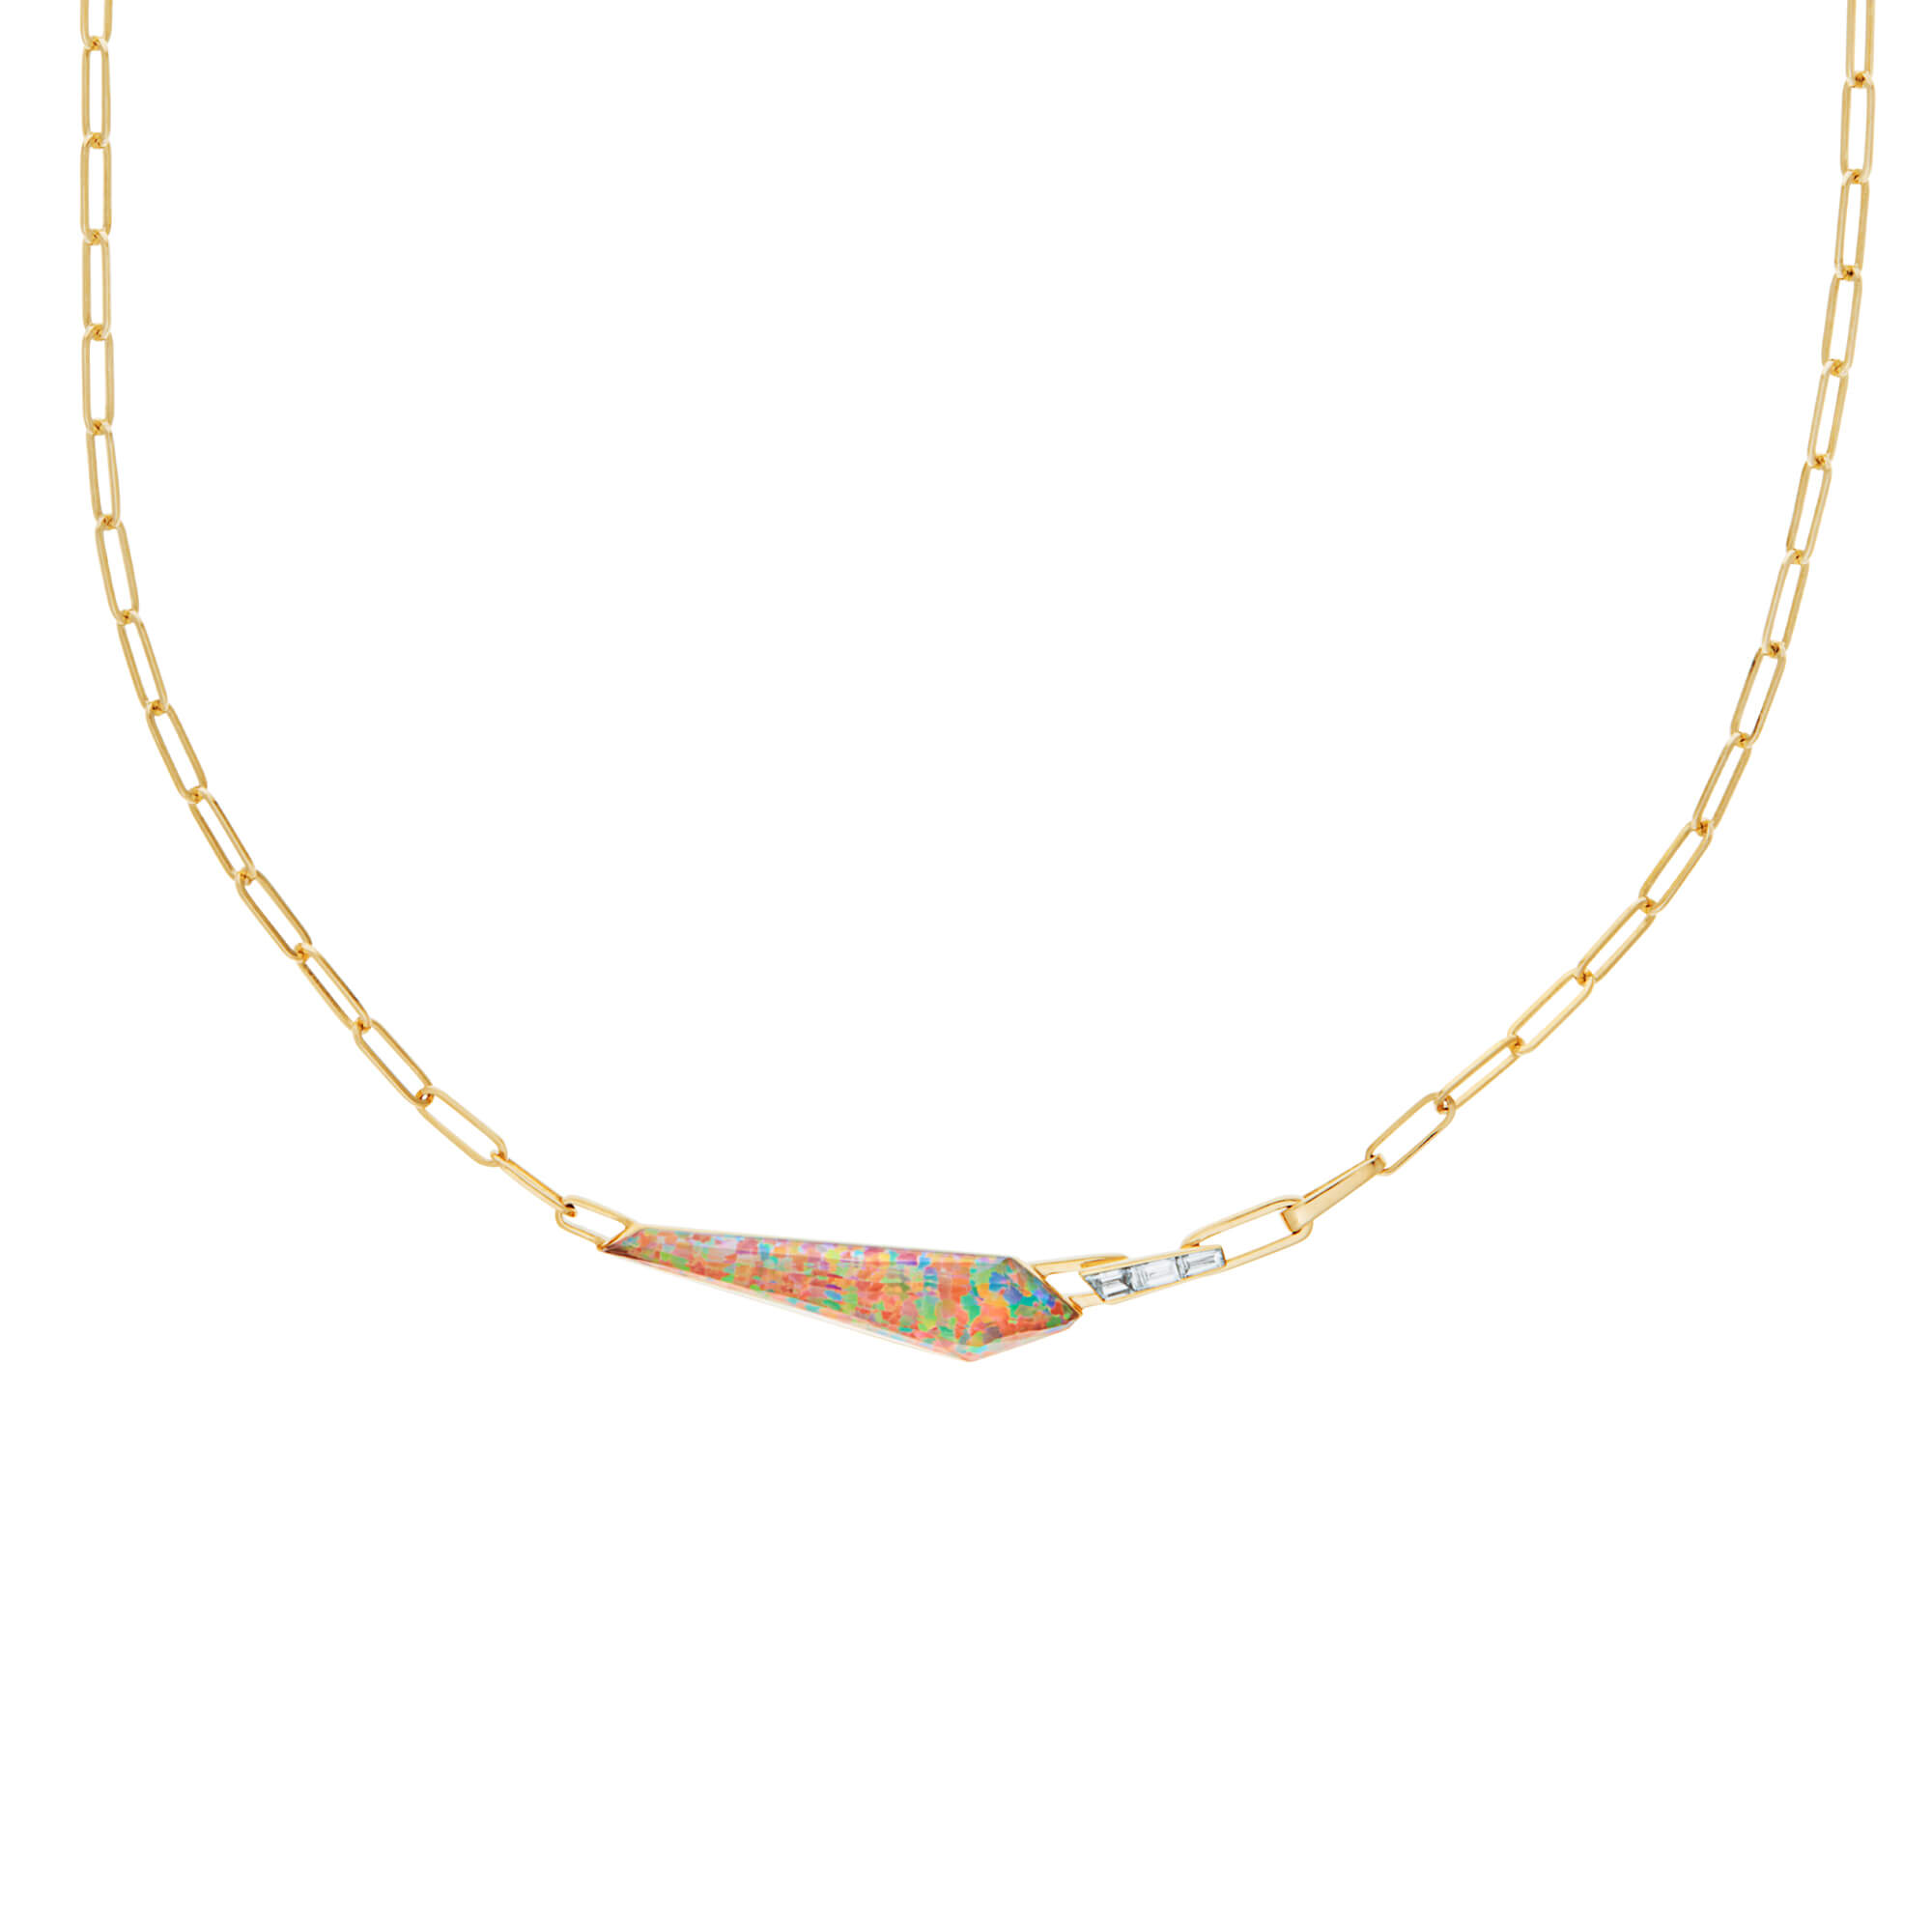 Fire Opalescent Slimline Shard Linked Choker | CH₂